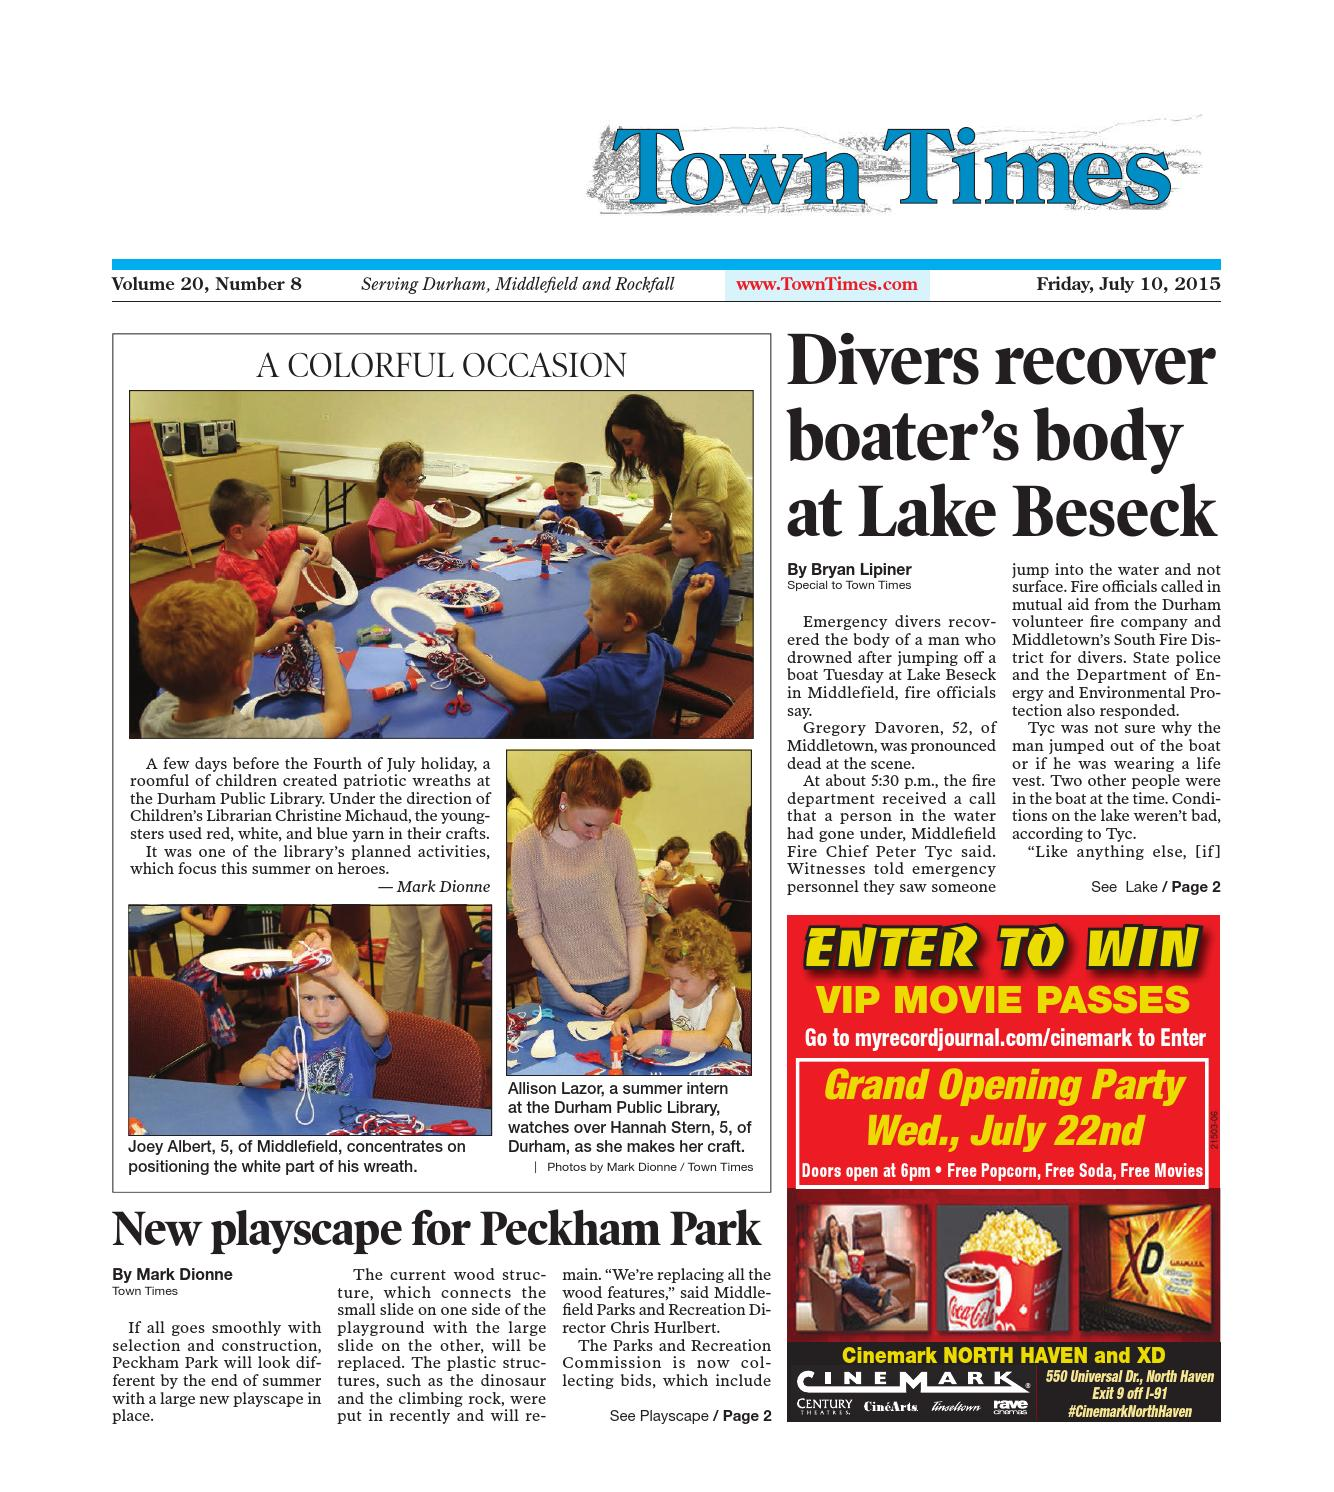 Towntimesjuly10 by Town Times Newspaper issuu